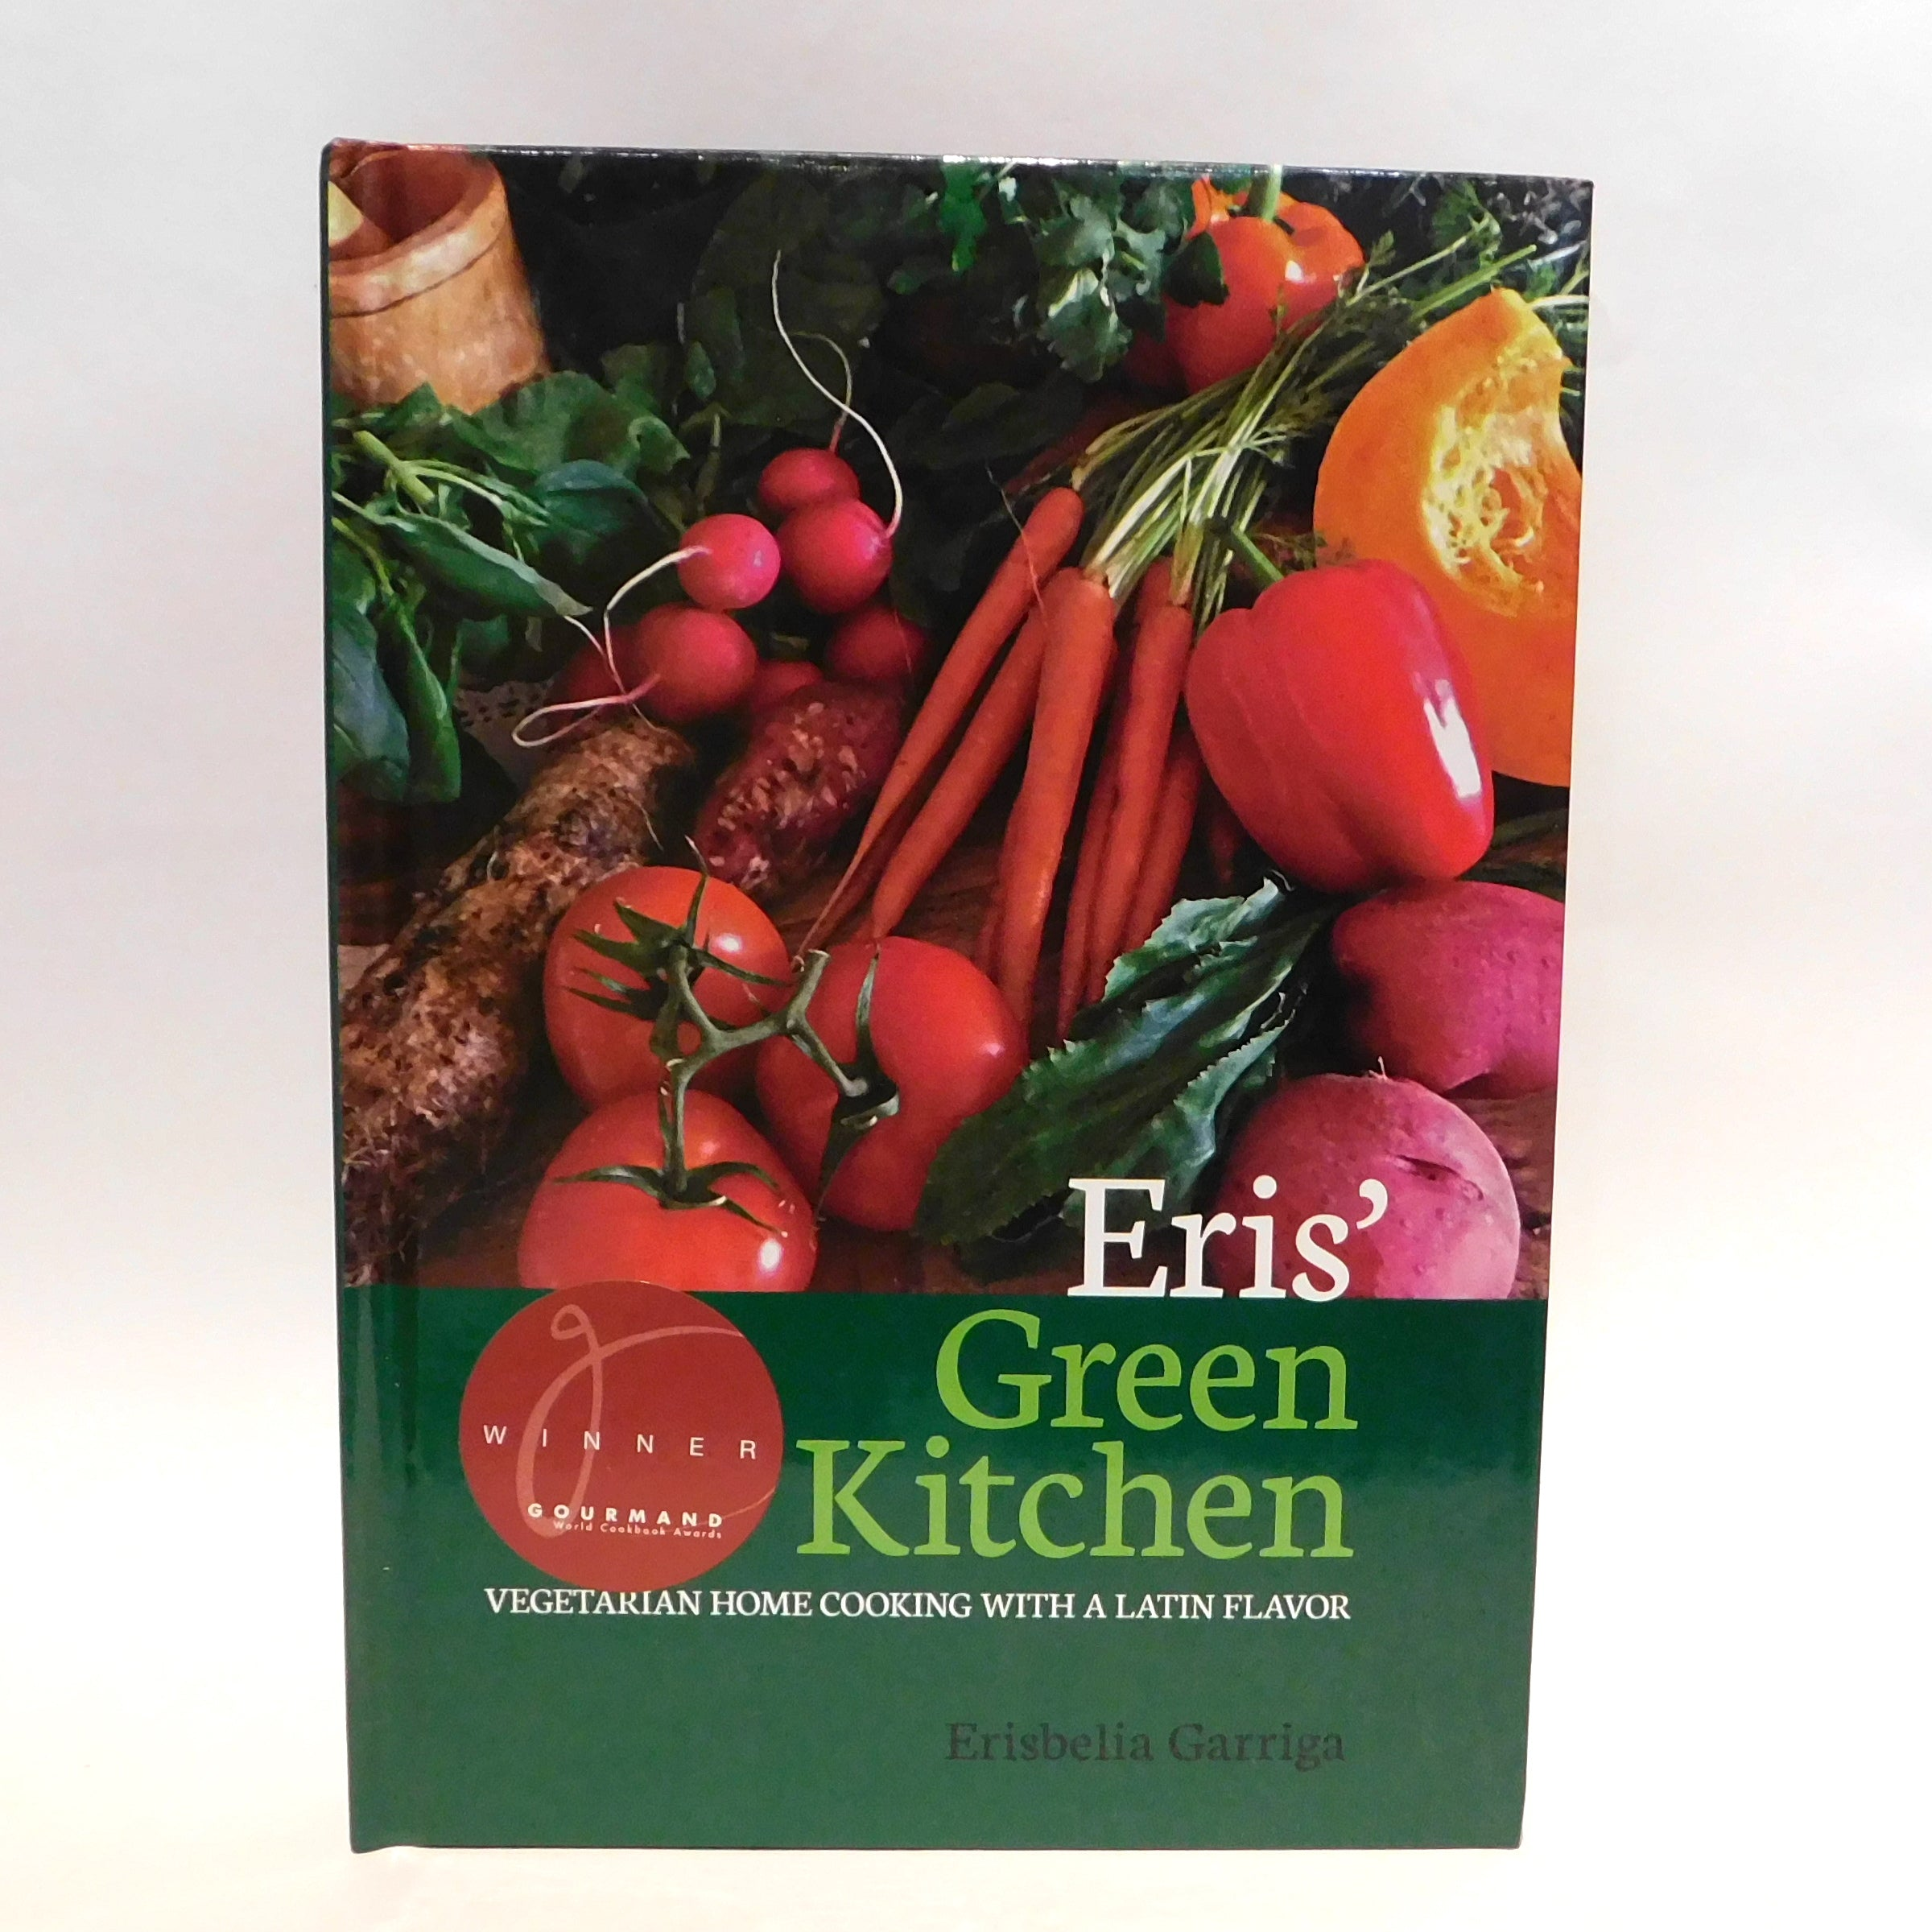 Eris' Green Kitchen by Erisbelia Garriaga